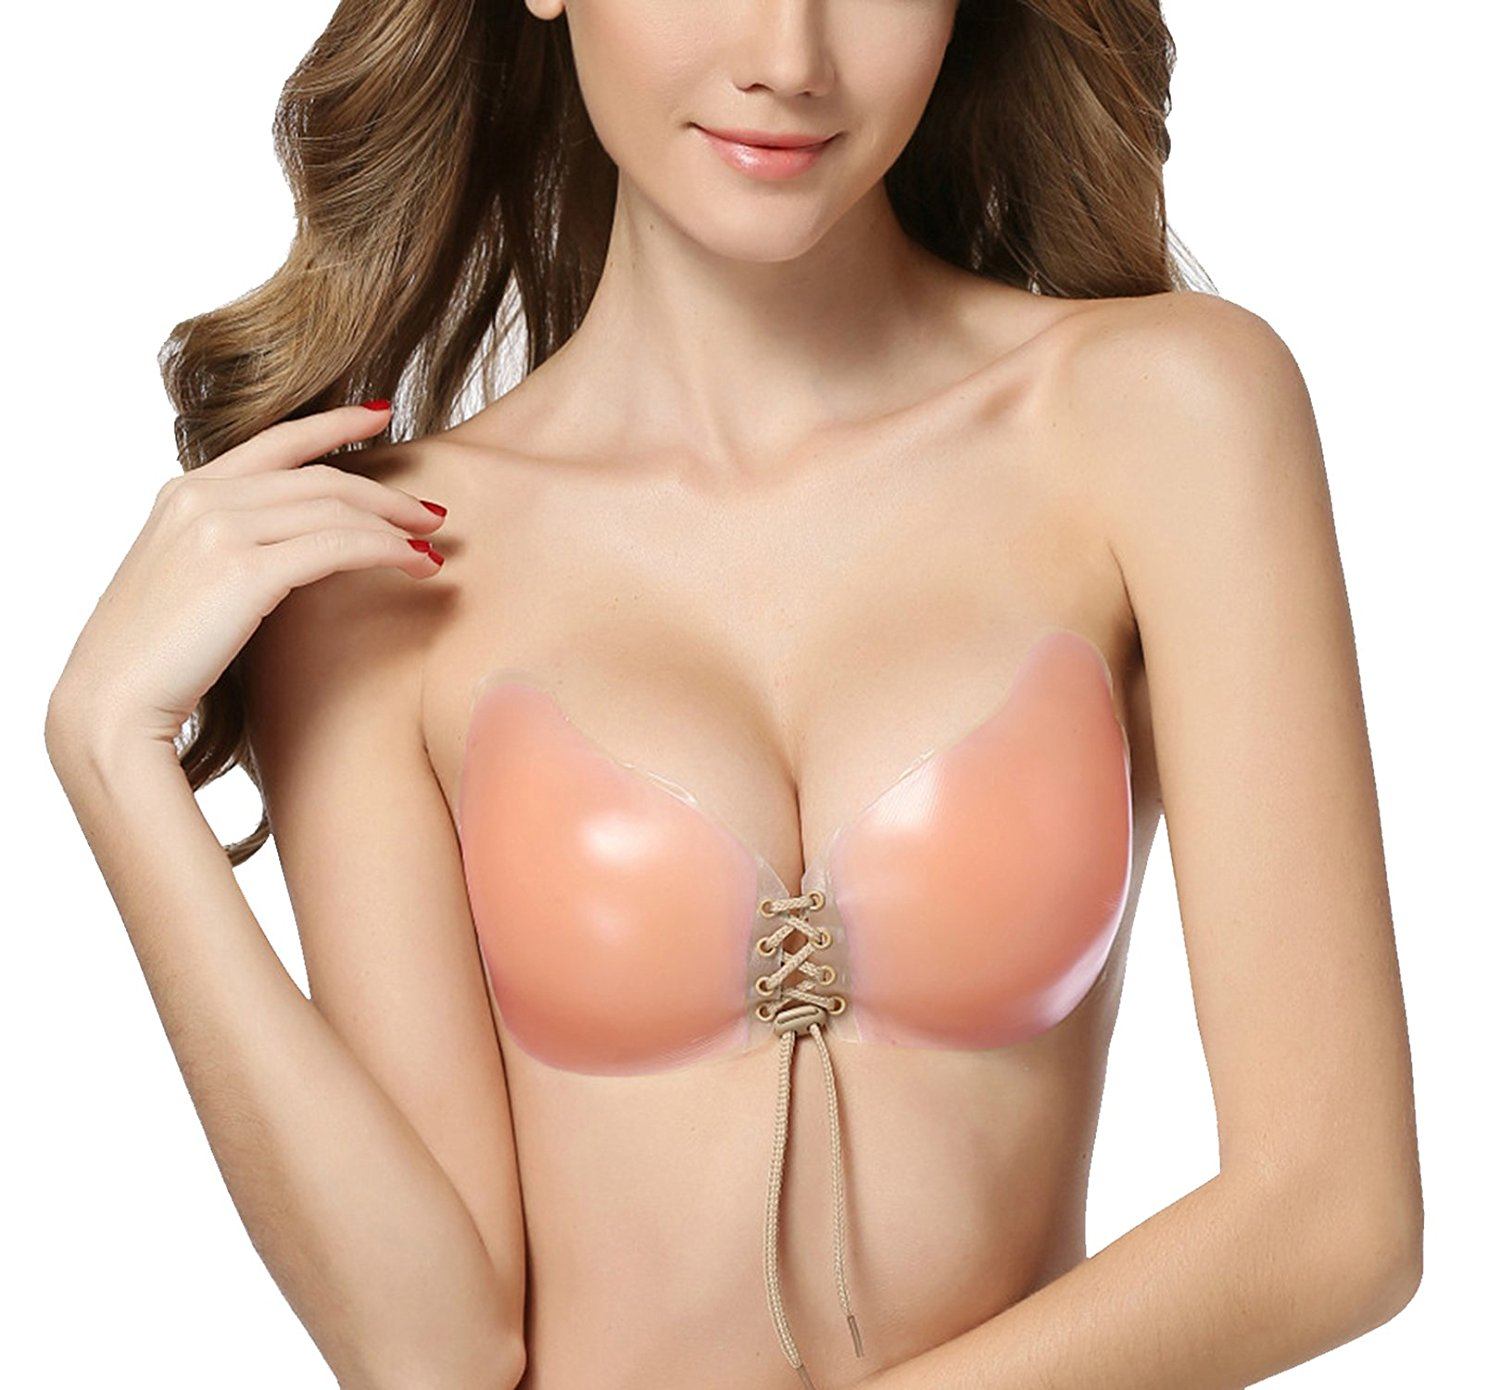 5341673a8149f Get Quotations · ZuLves Adhesive Bra Strapless Invisible Bra Push-up  Silicone Sexy Bra with Drawstring for Women